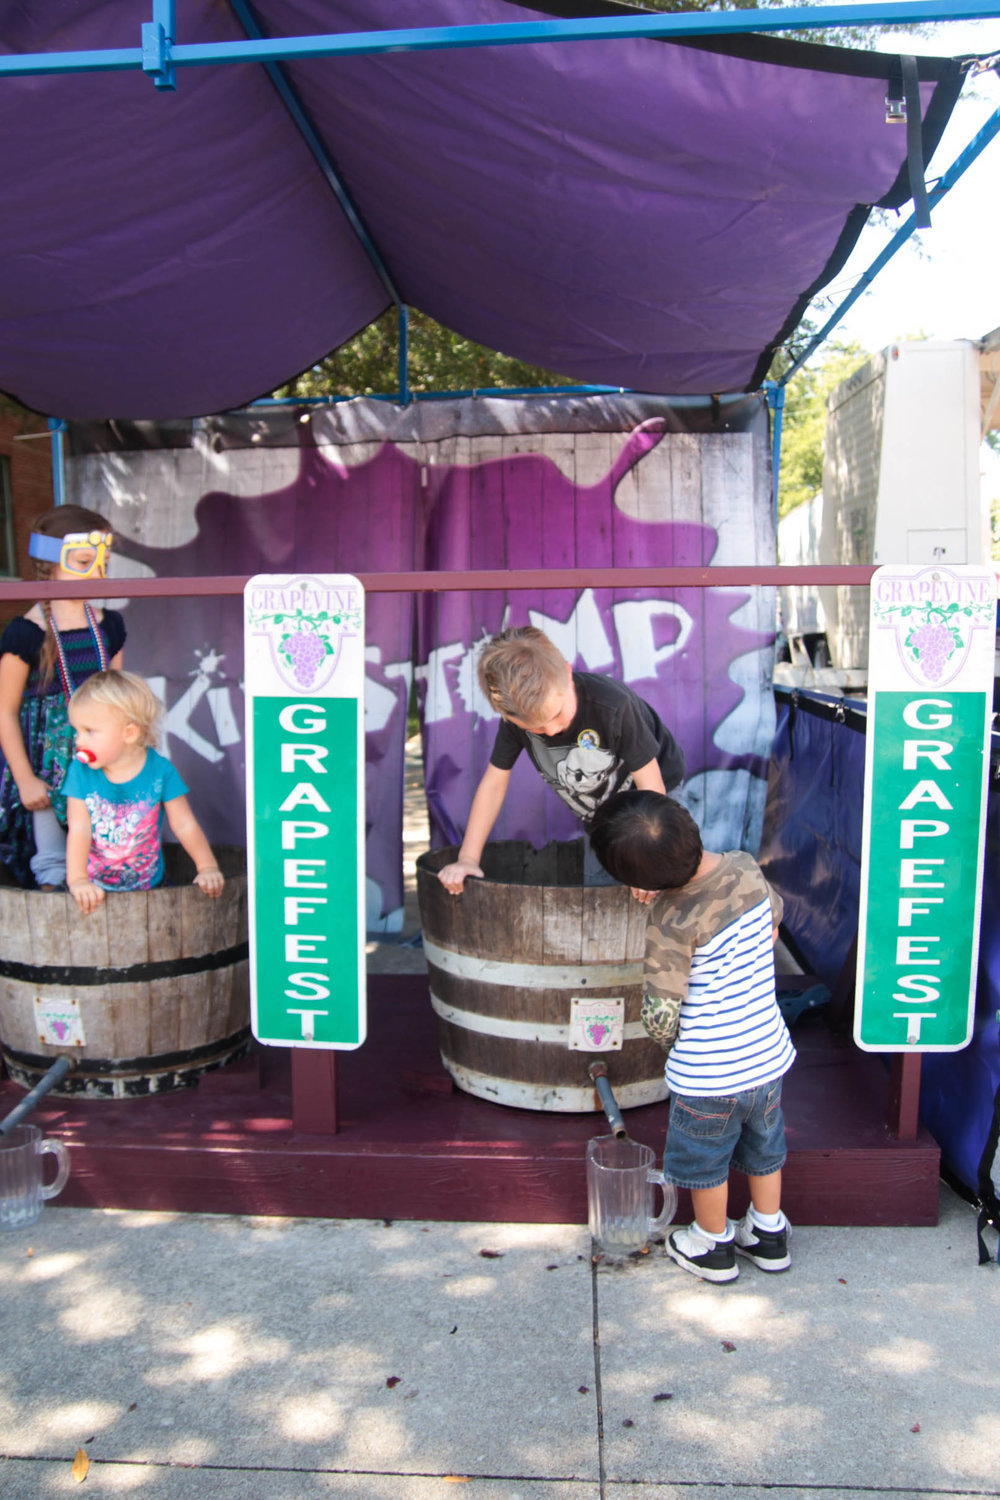 grapefest-13-of-14.jpg